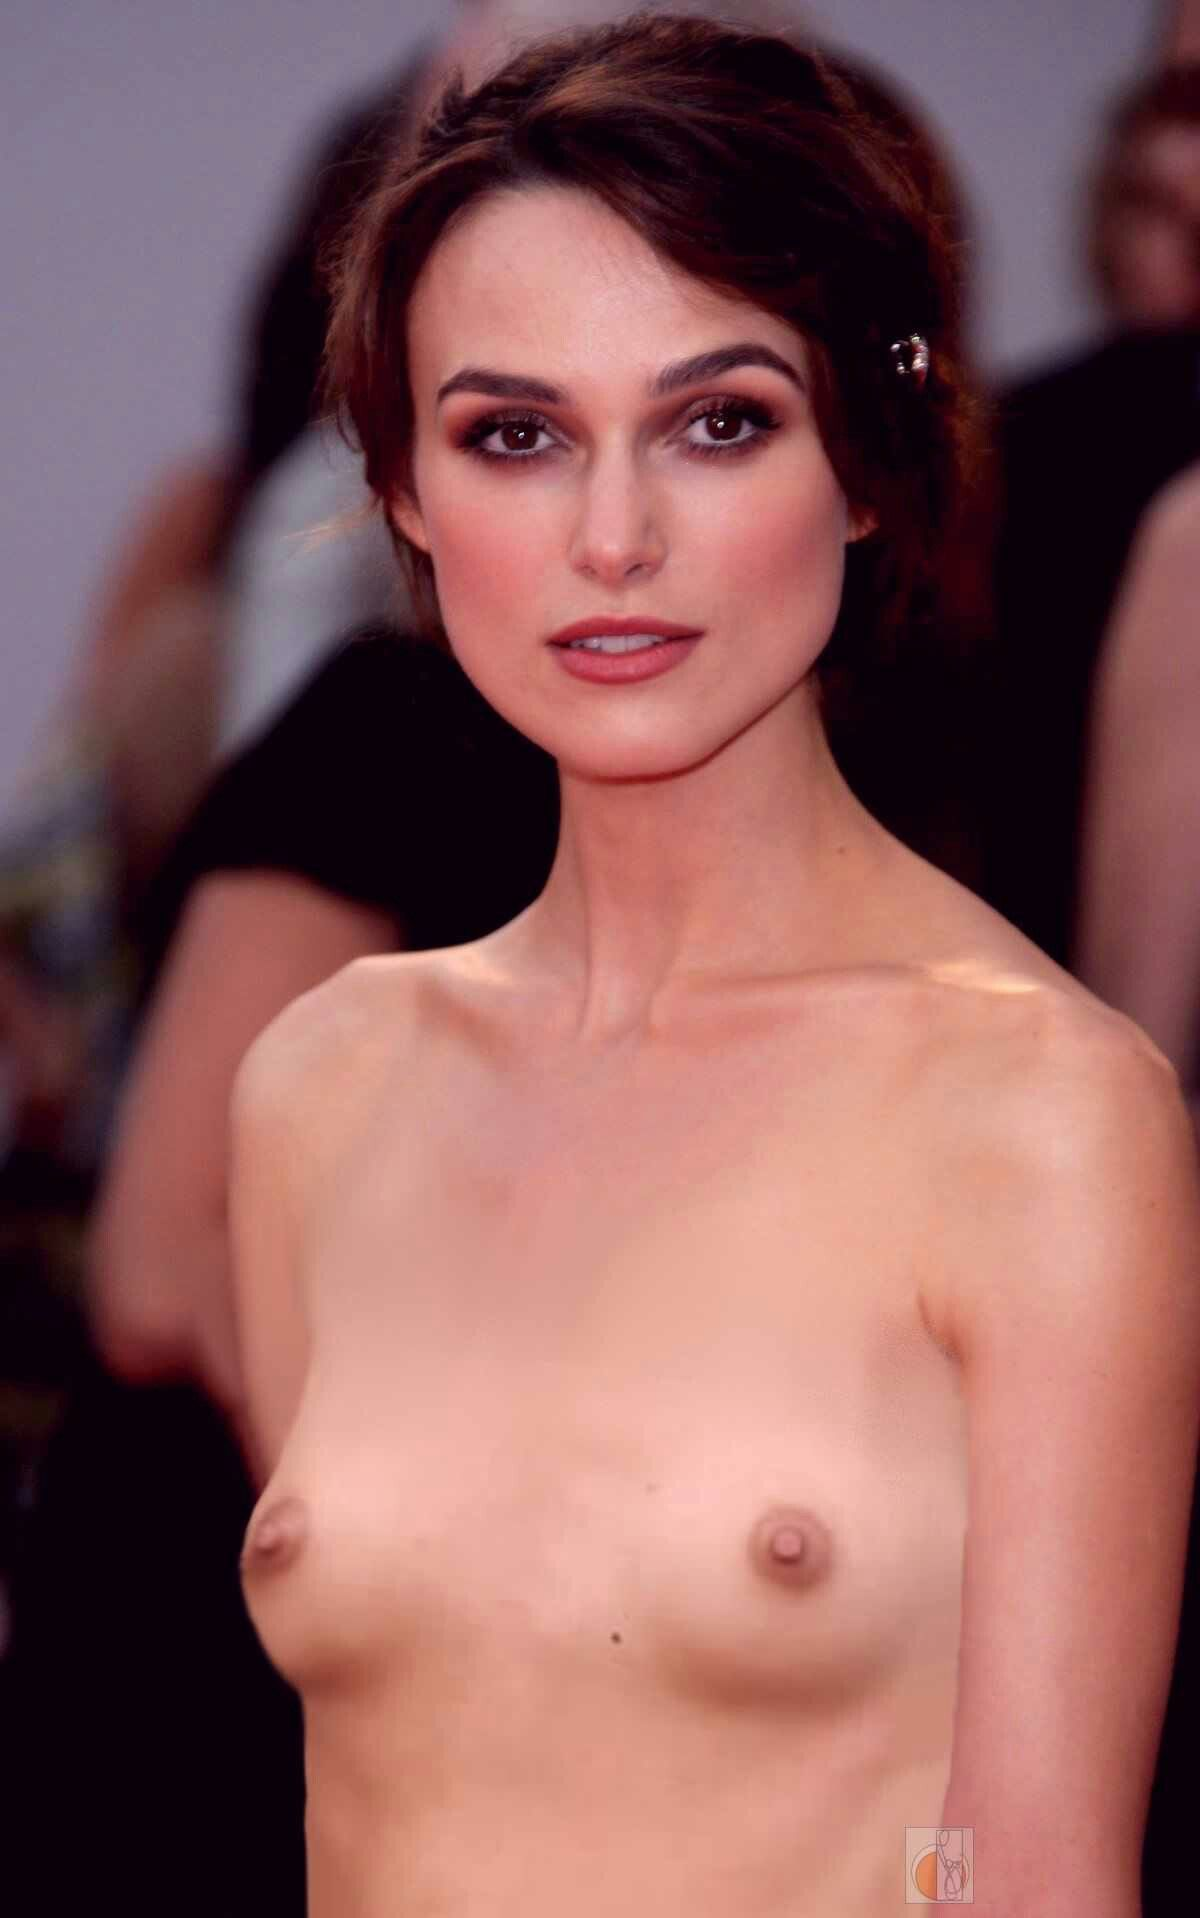 Hong Kong Celebrity Nude 28 best 女星 images in 2019 | cecilia cheung, celebrities